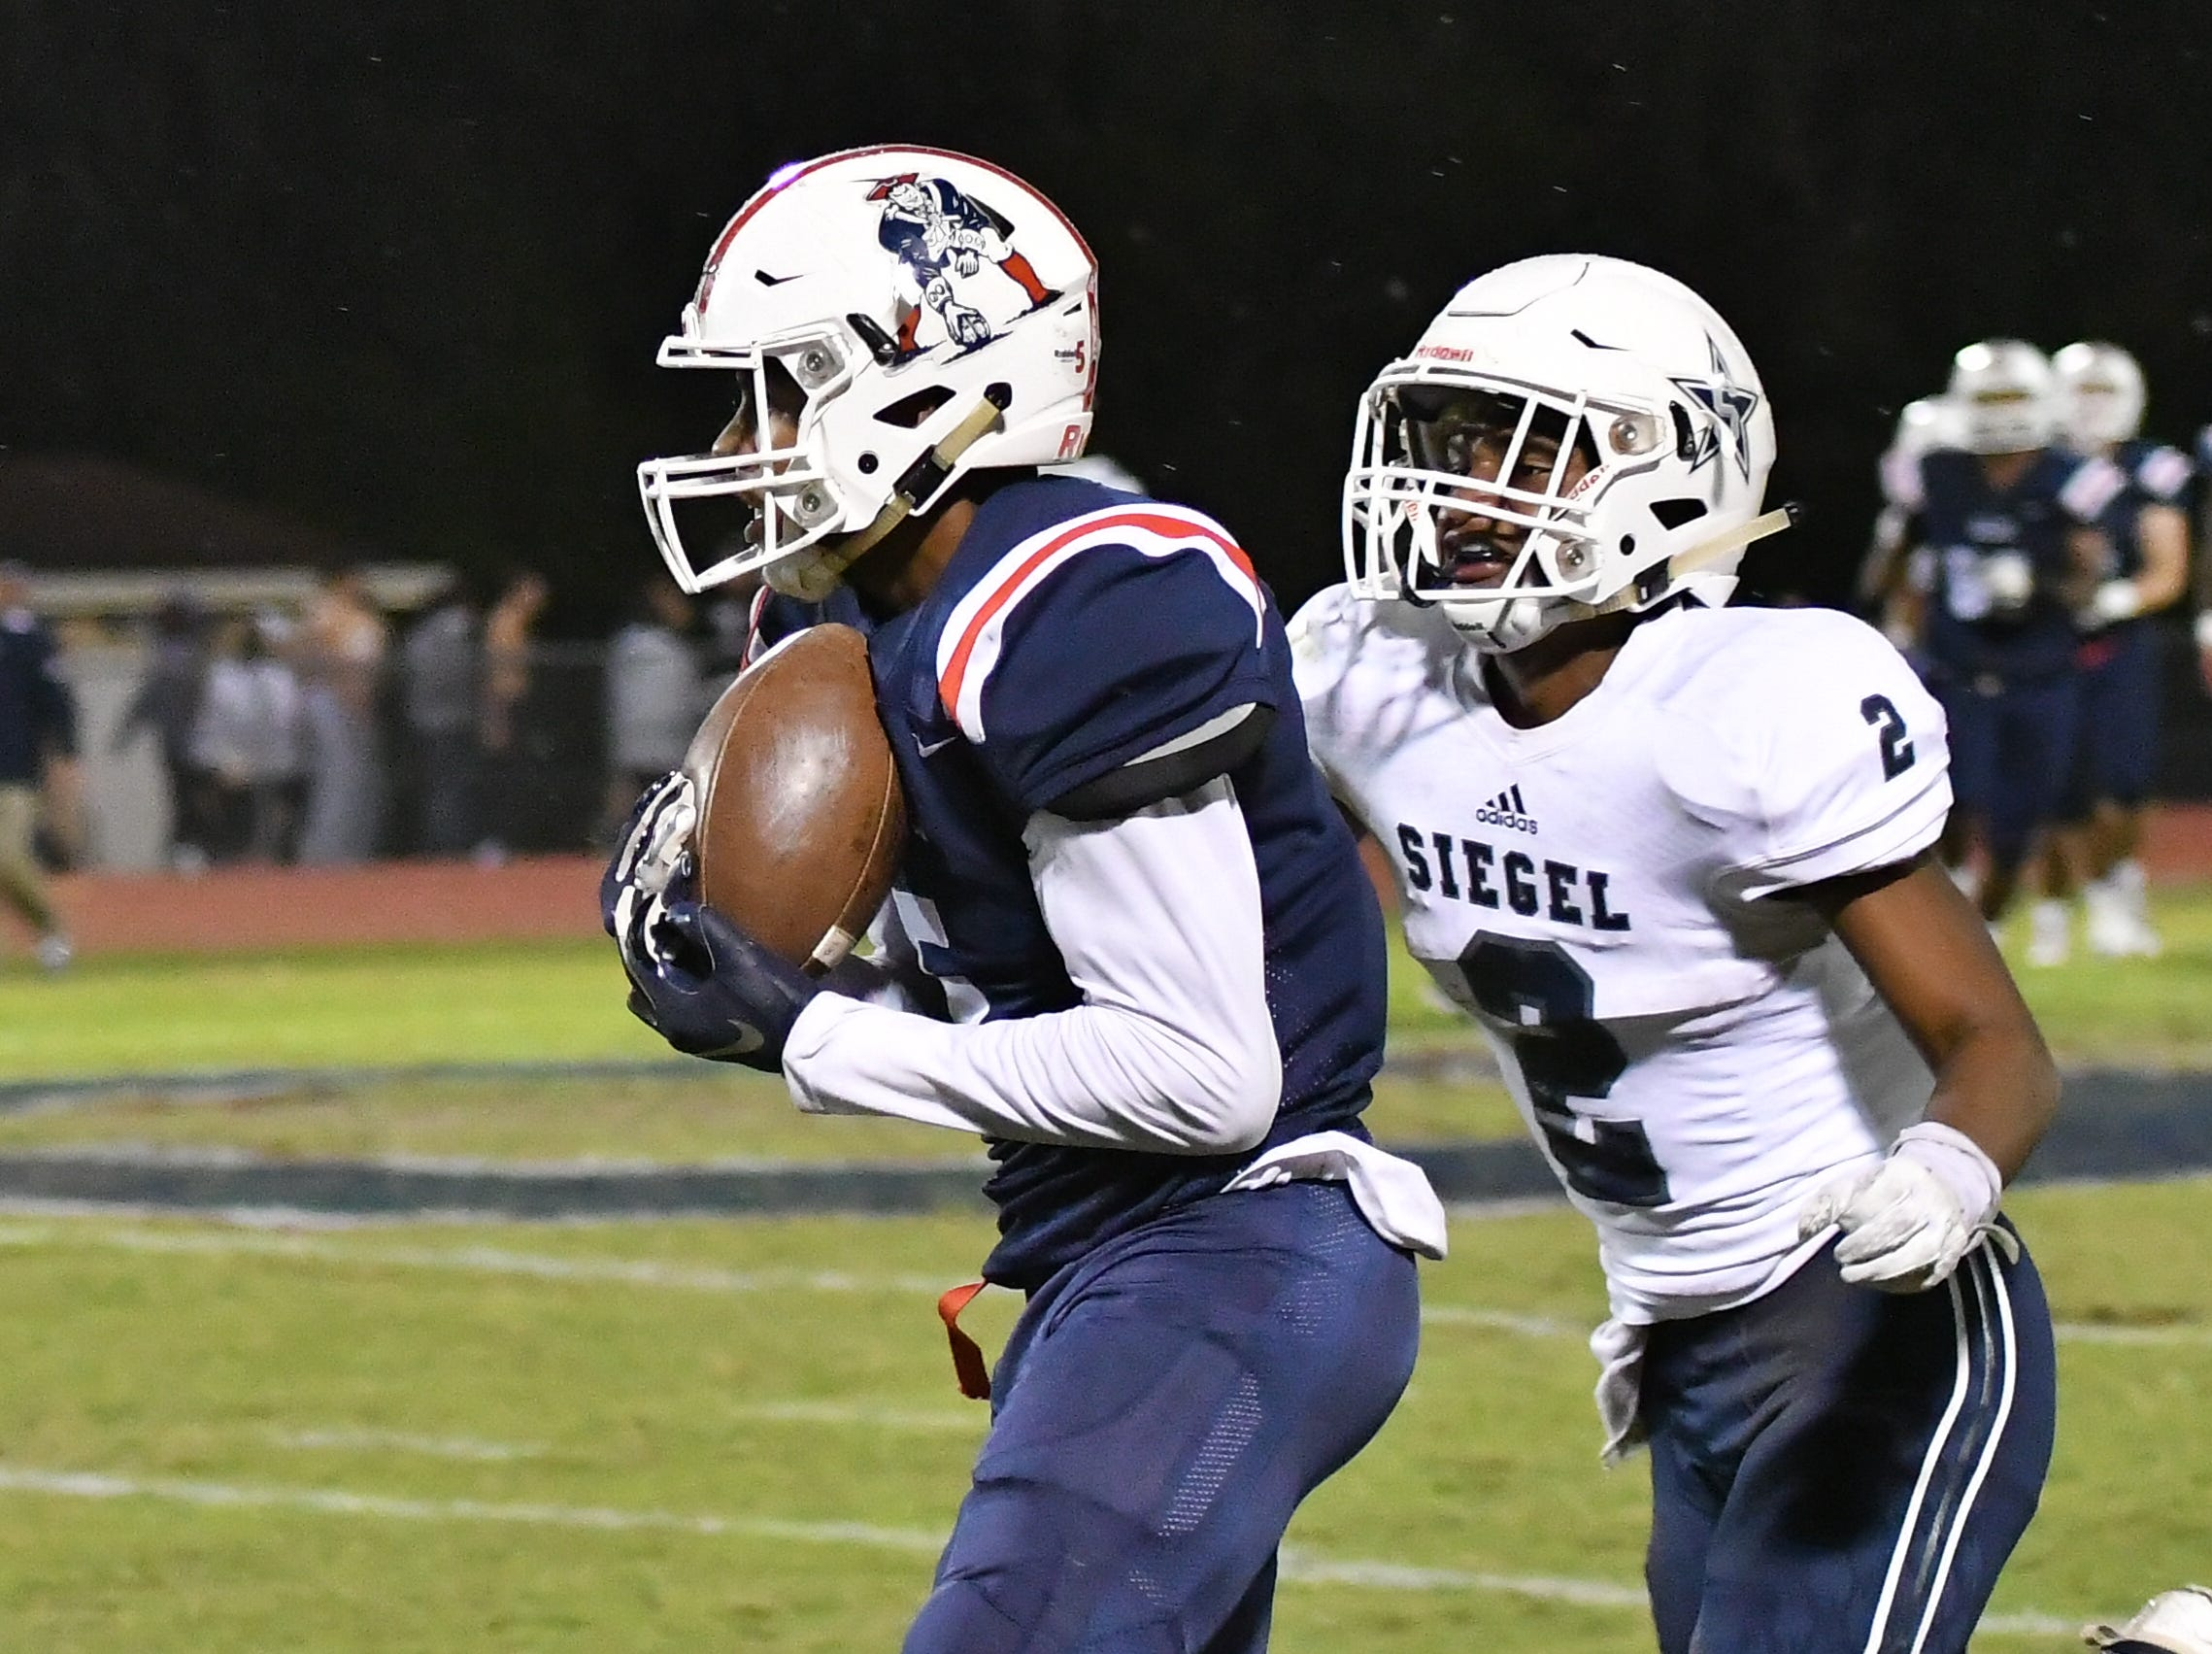 Oakland's Woodi Washington makes a reception Friday night as Siegel's Ryan Wilson moves in.